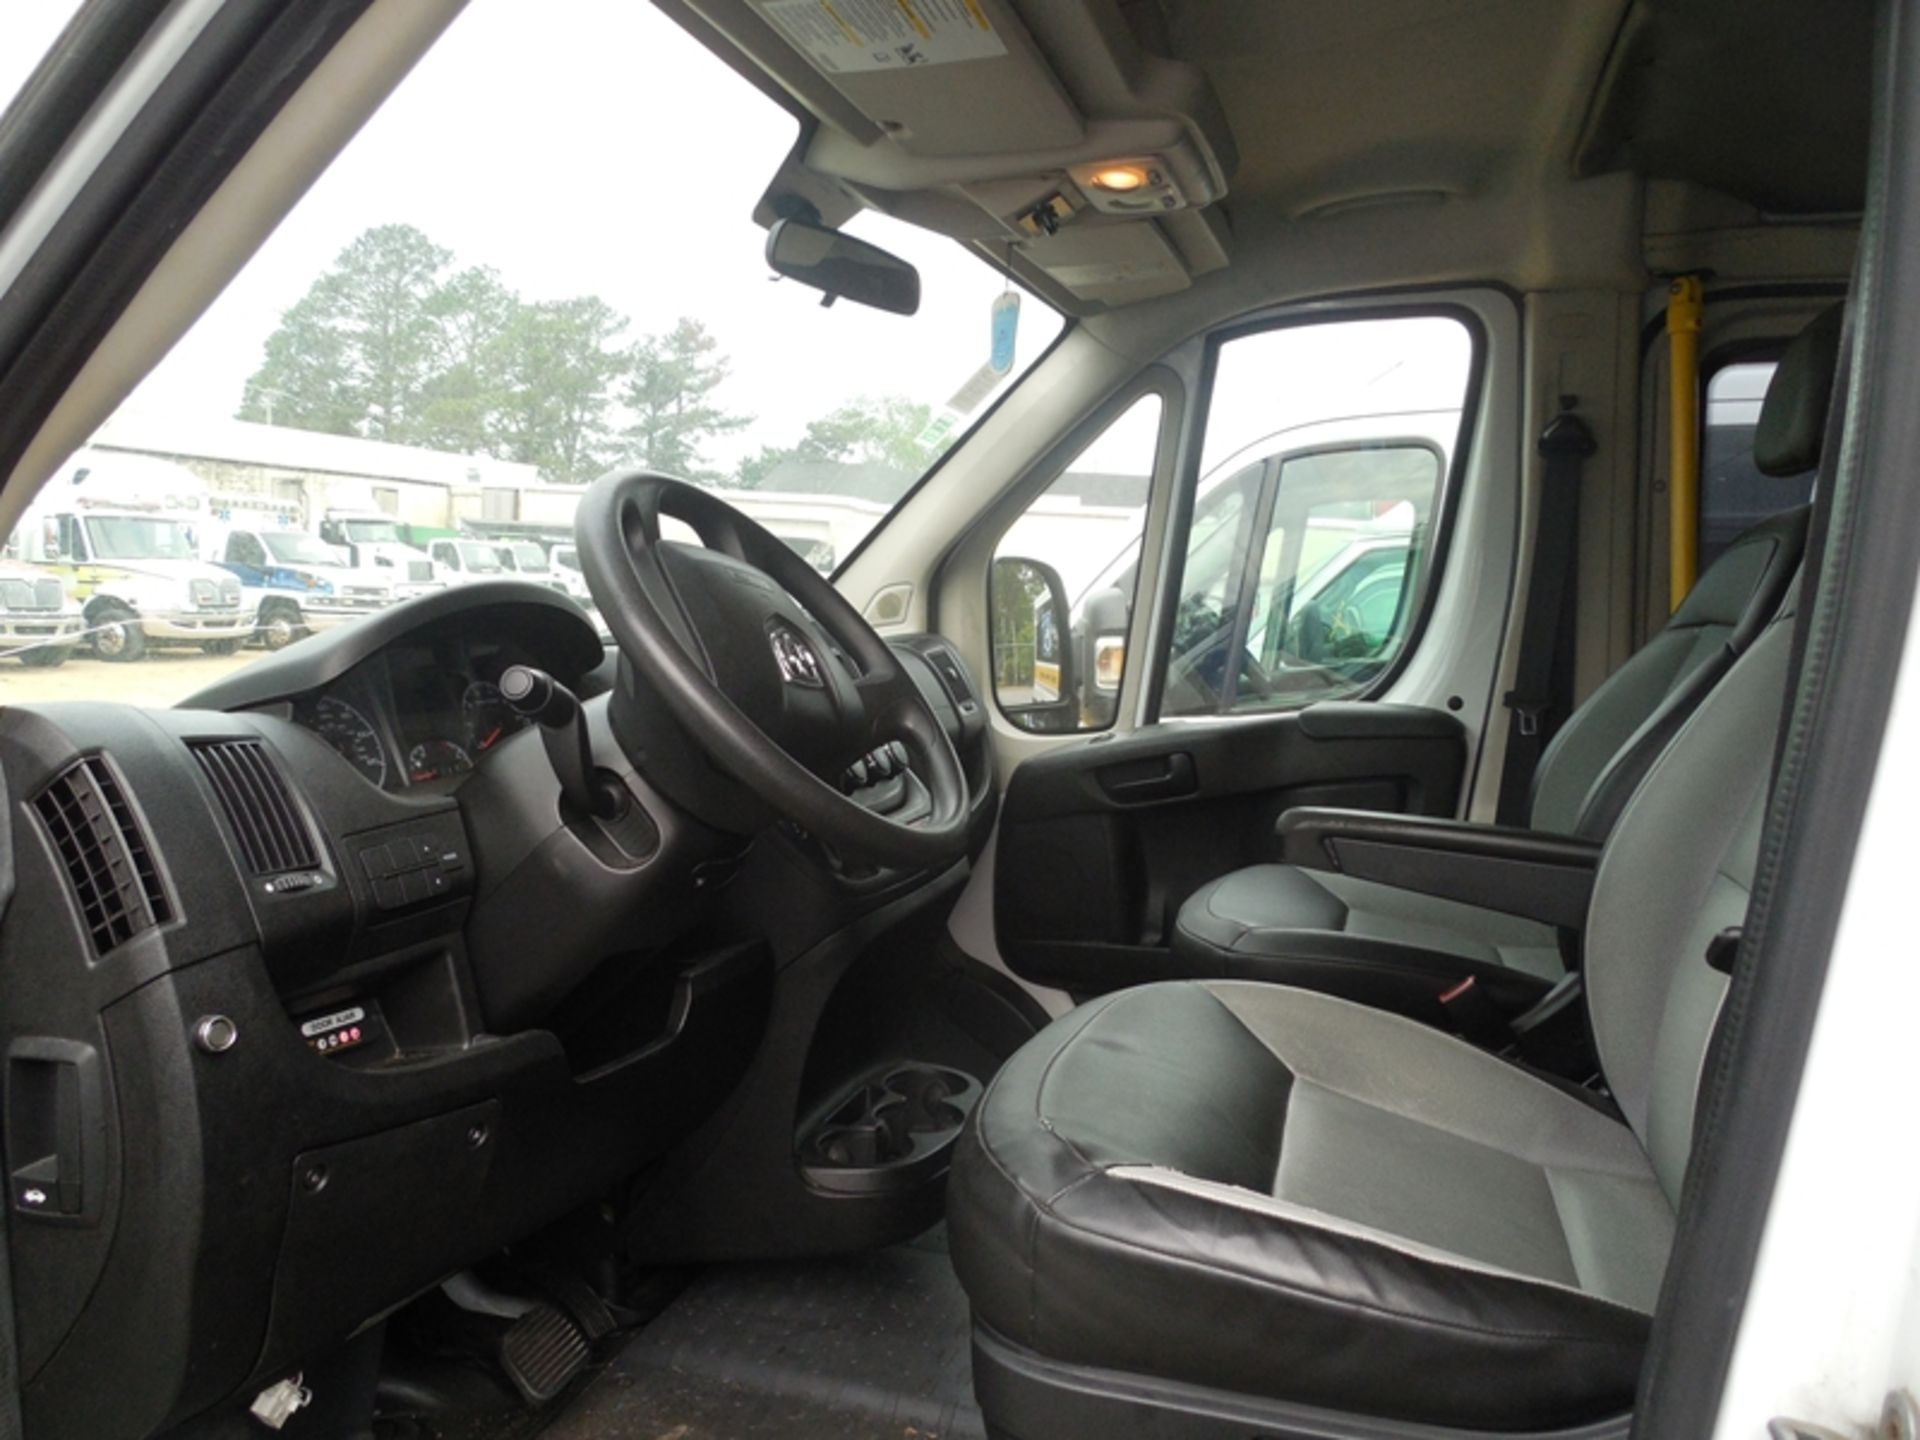 2014 Dodge Promaster wheel chair van - Image 5 of 6